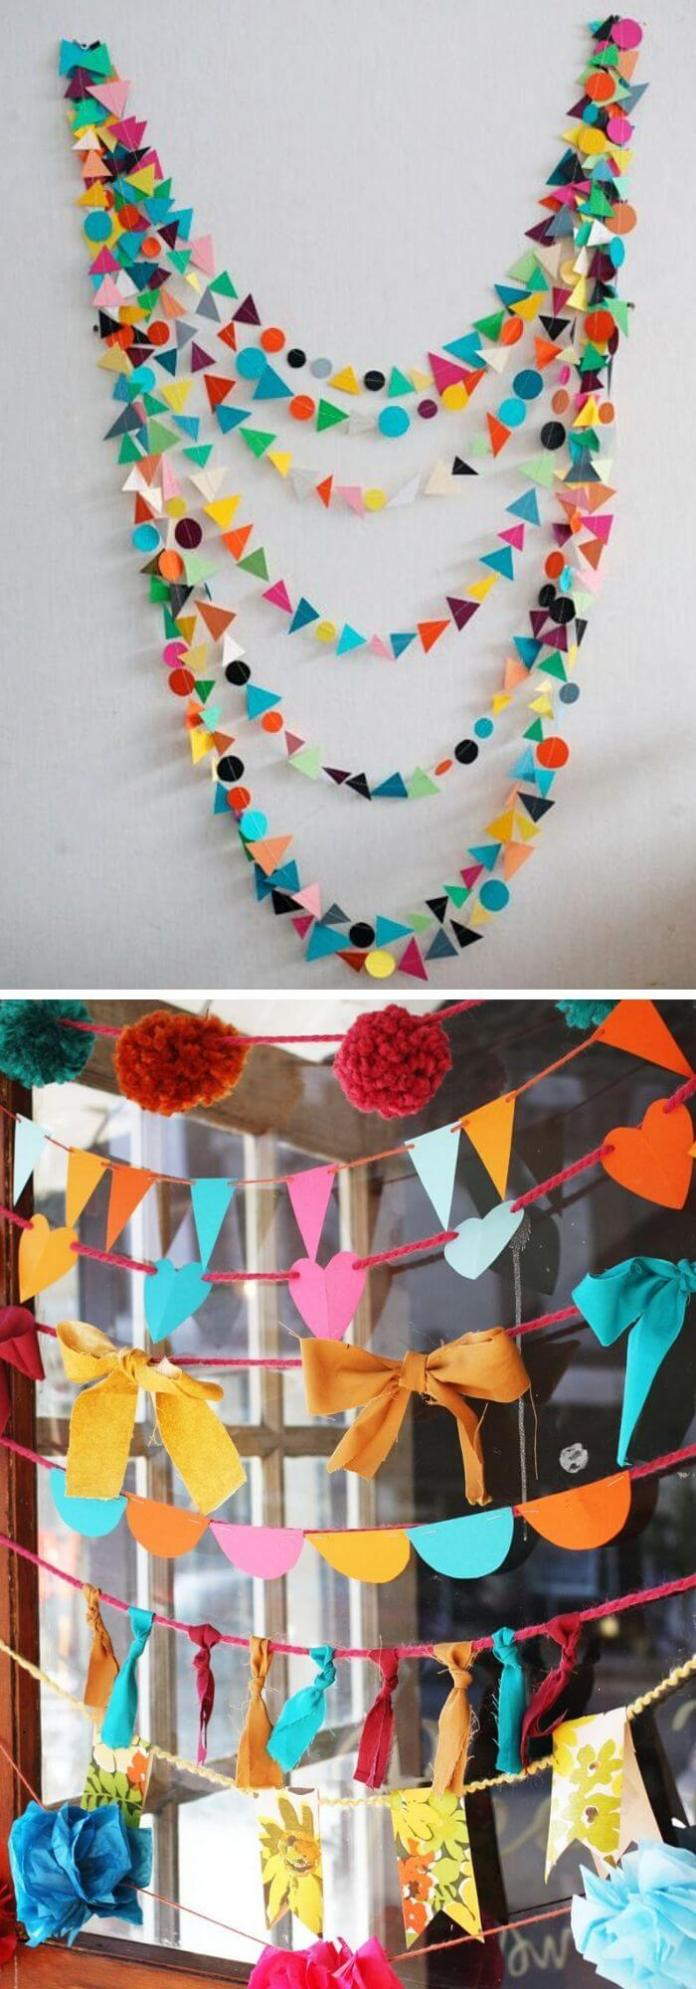 Garlands as room dividers